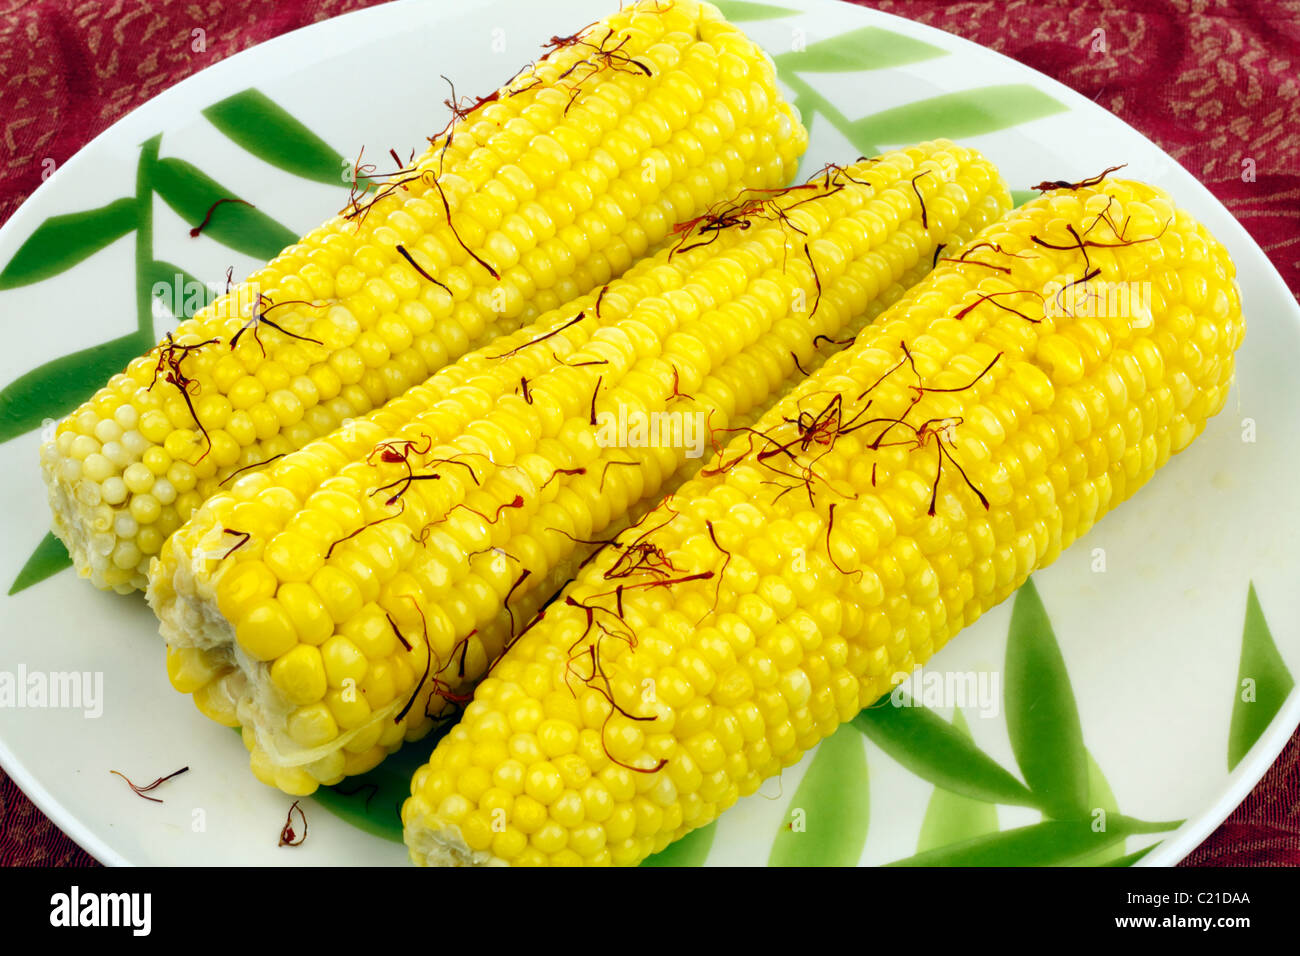 Three bright, buttered yellow vegetable ears topped with strands of red orange crocus stigmas. Interesting way to - Stock Image